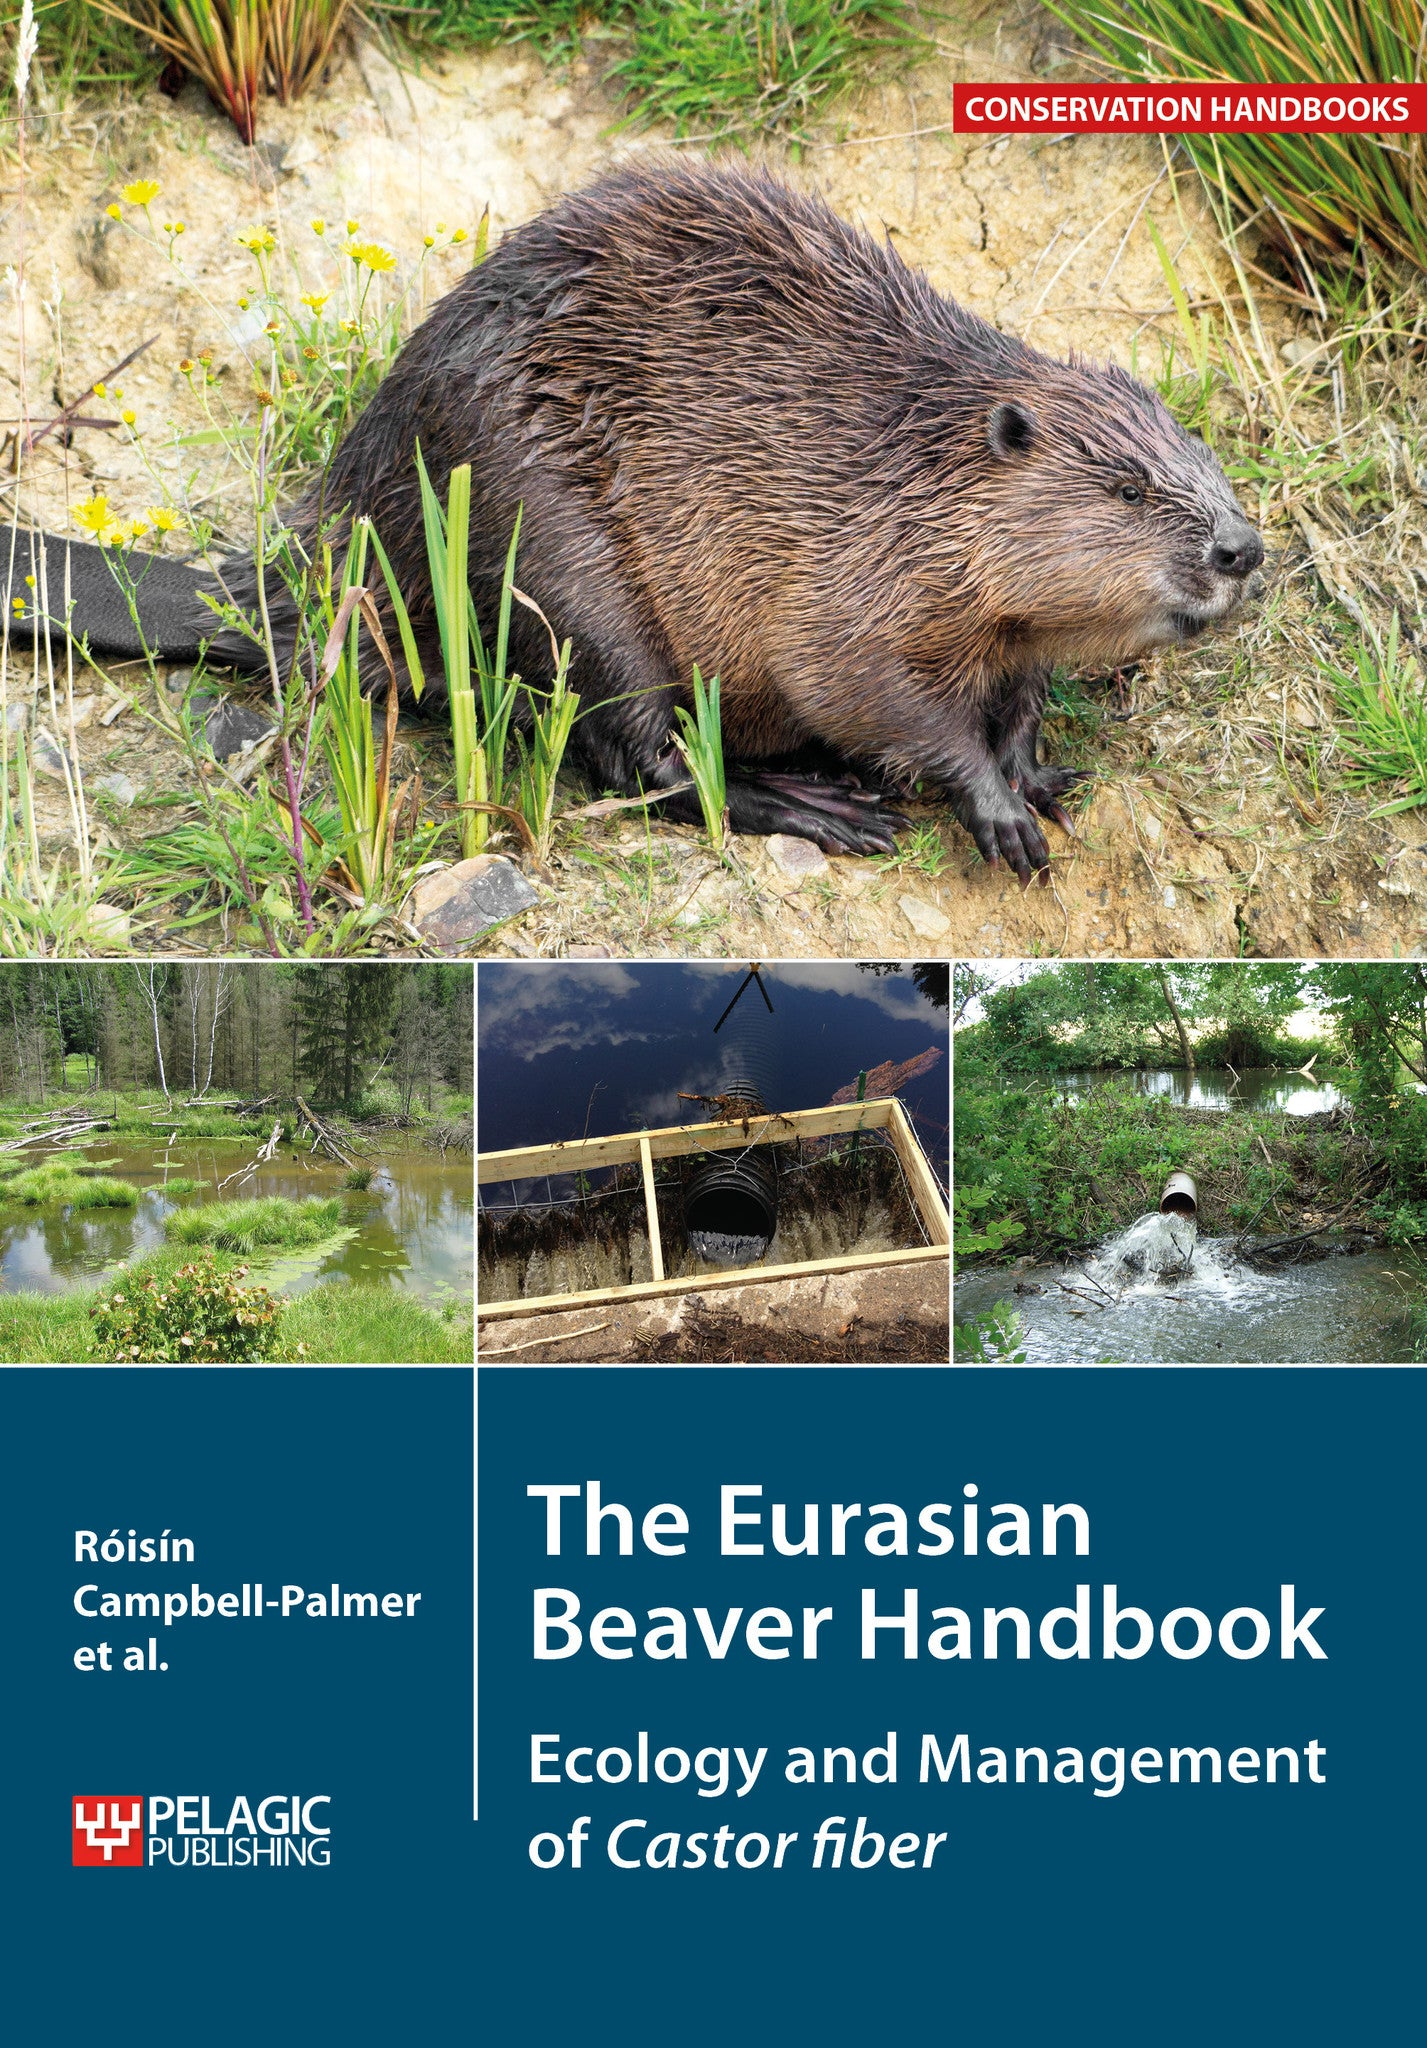 The Eurasian Beaver Handbook - Pelagic Publishing